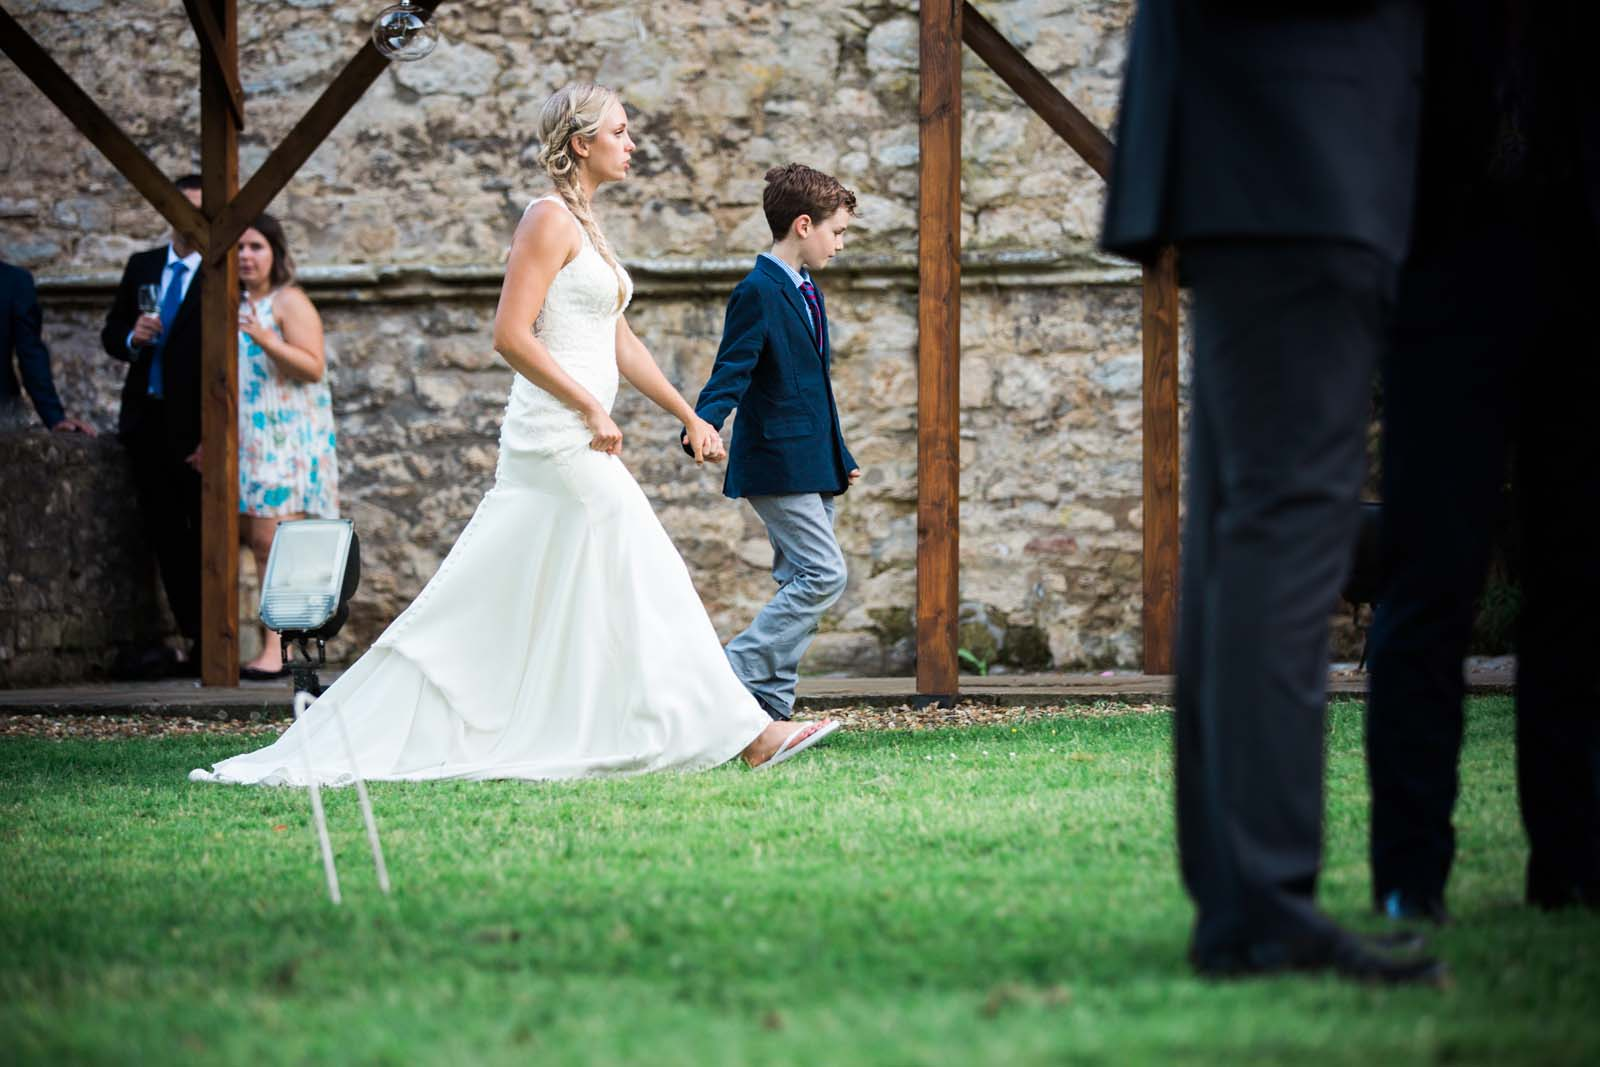 Notley Abbey Wedding Buckinghamshire Bride Walking with Young Guest